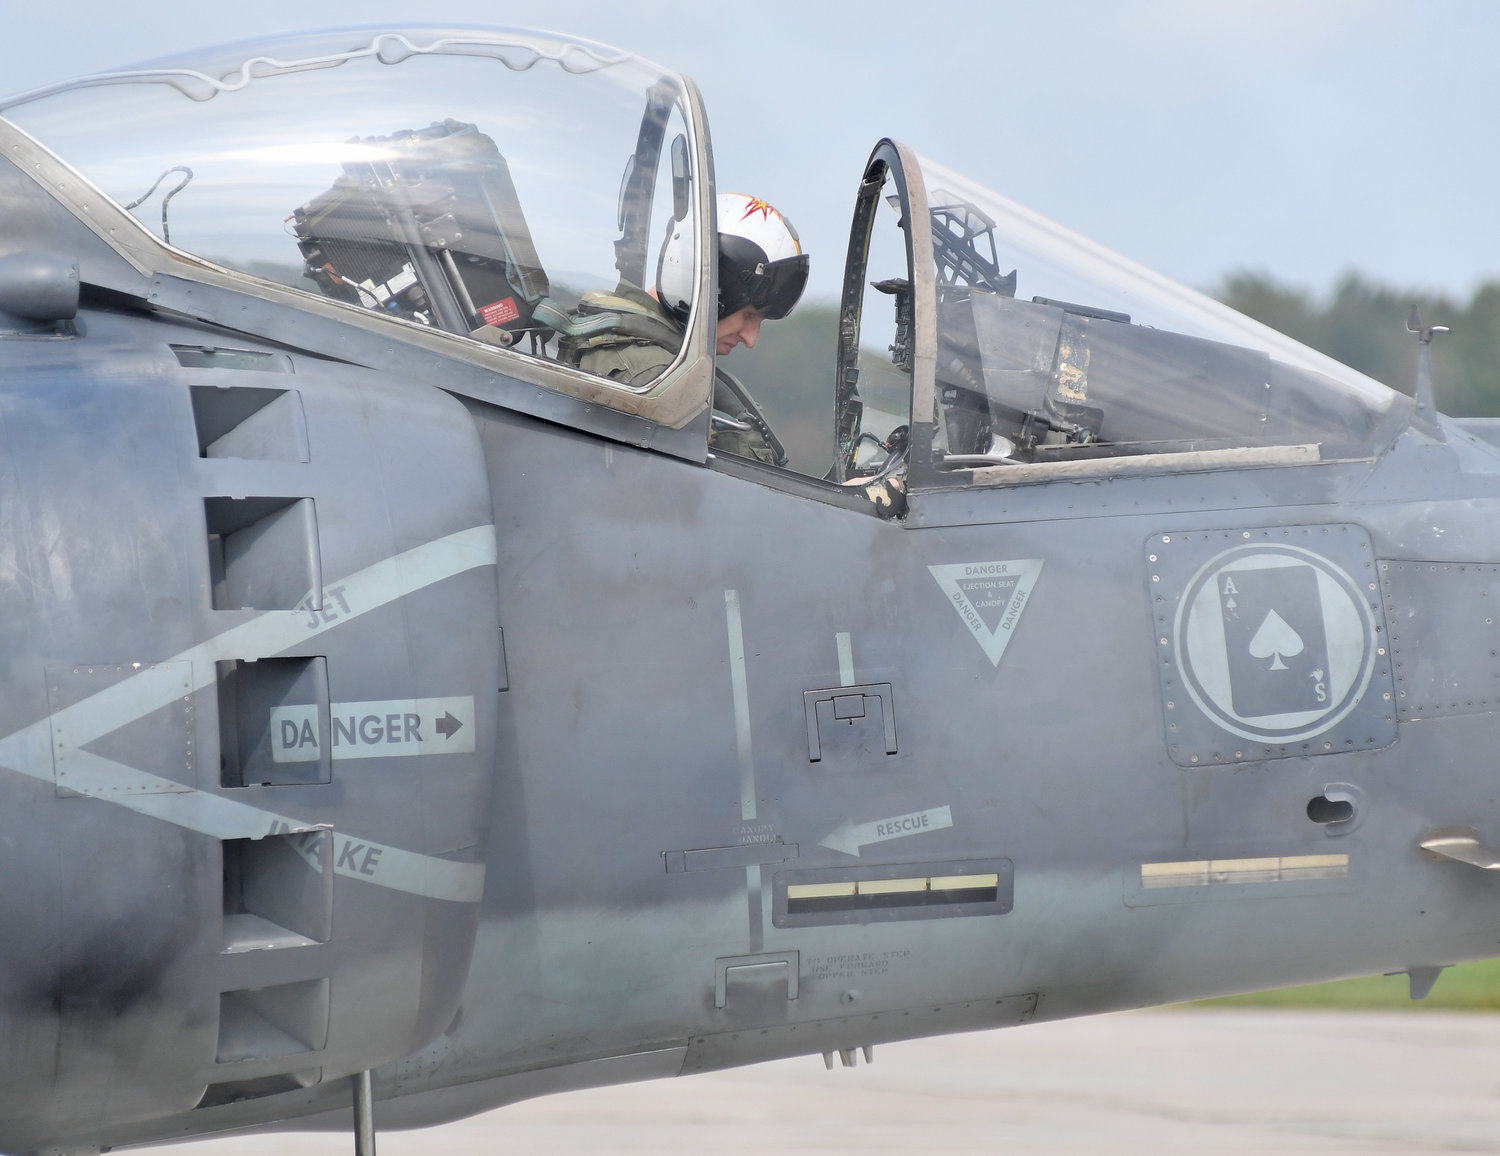 AWAITING FLIGHT — A pilot rests in the cockpit of his Harrier jet near the runway at Griffiss International Airport on Tuesday afternoon.  The aircraft — one of four Harriers from Cherry Point, N.C. — is roosting at Griffiss this week for a series of training exercises.